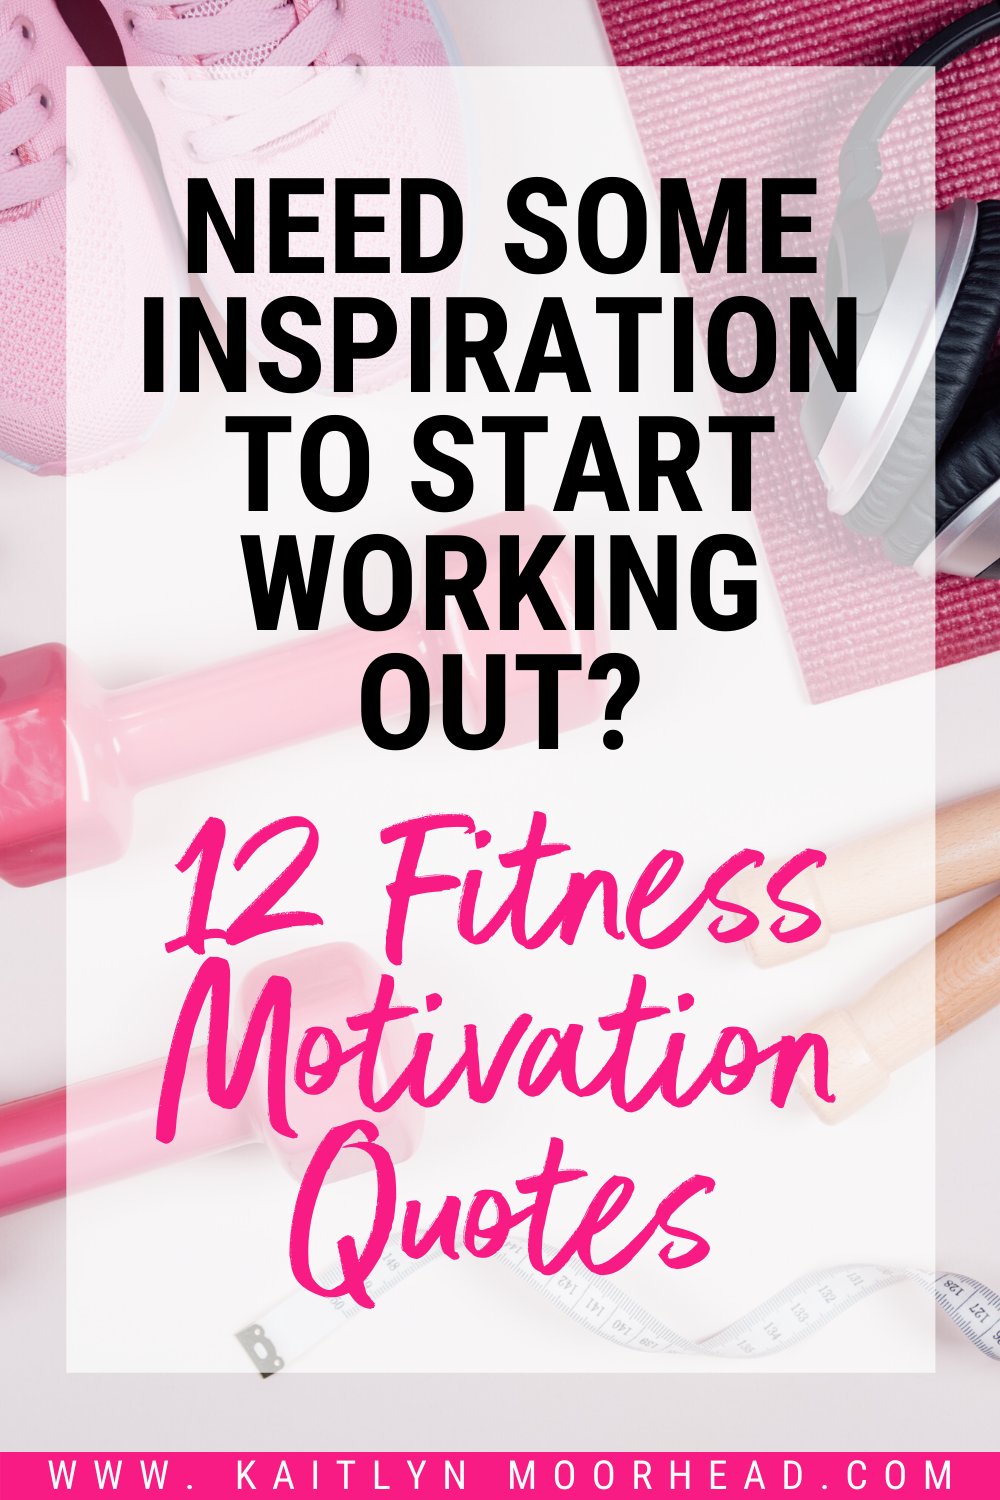 12 Fitness Motivation Quotes To Get You Inspired -  12 Fitness Motivation Quotes For Women To Get Yo...